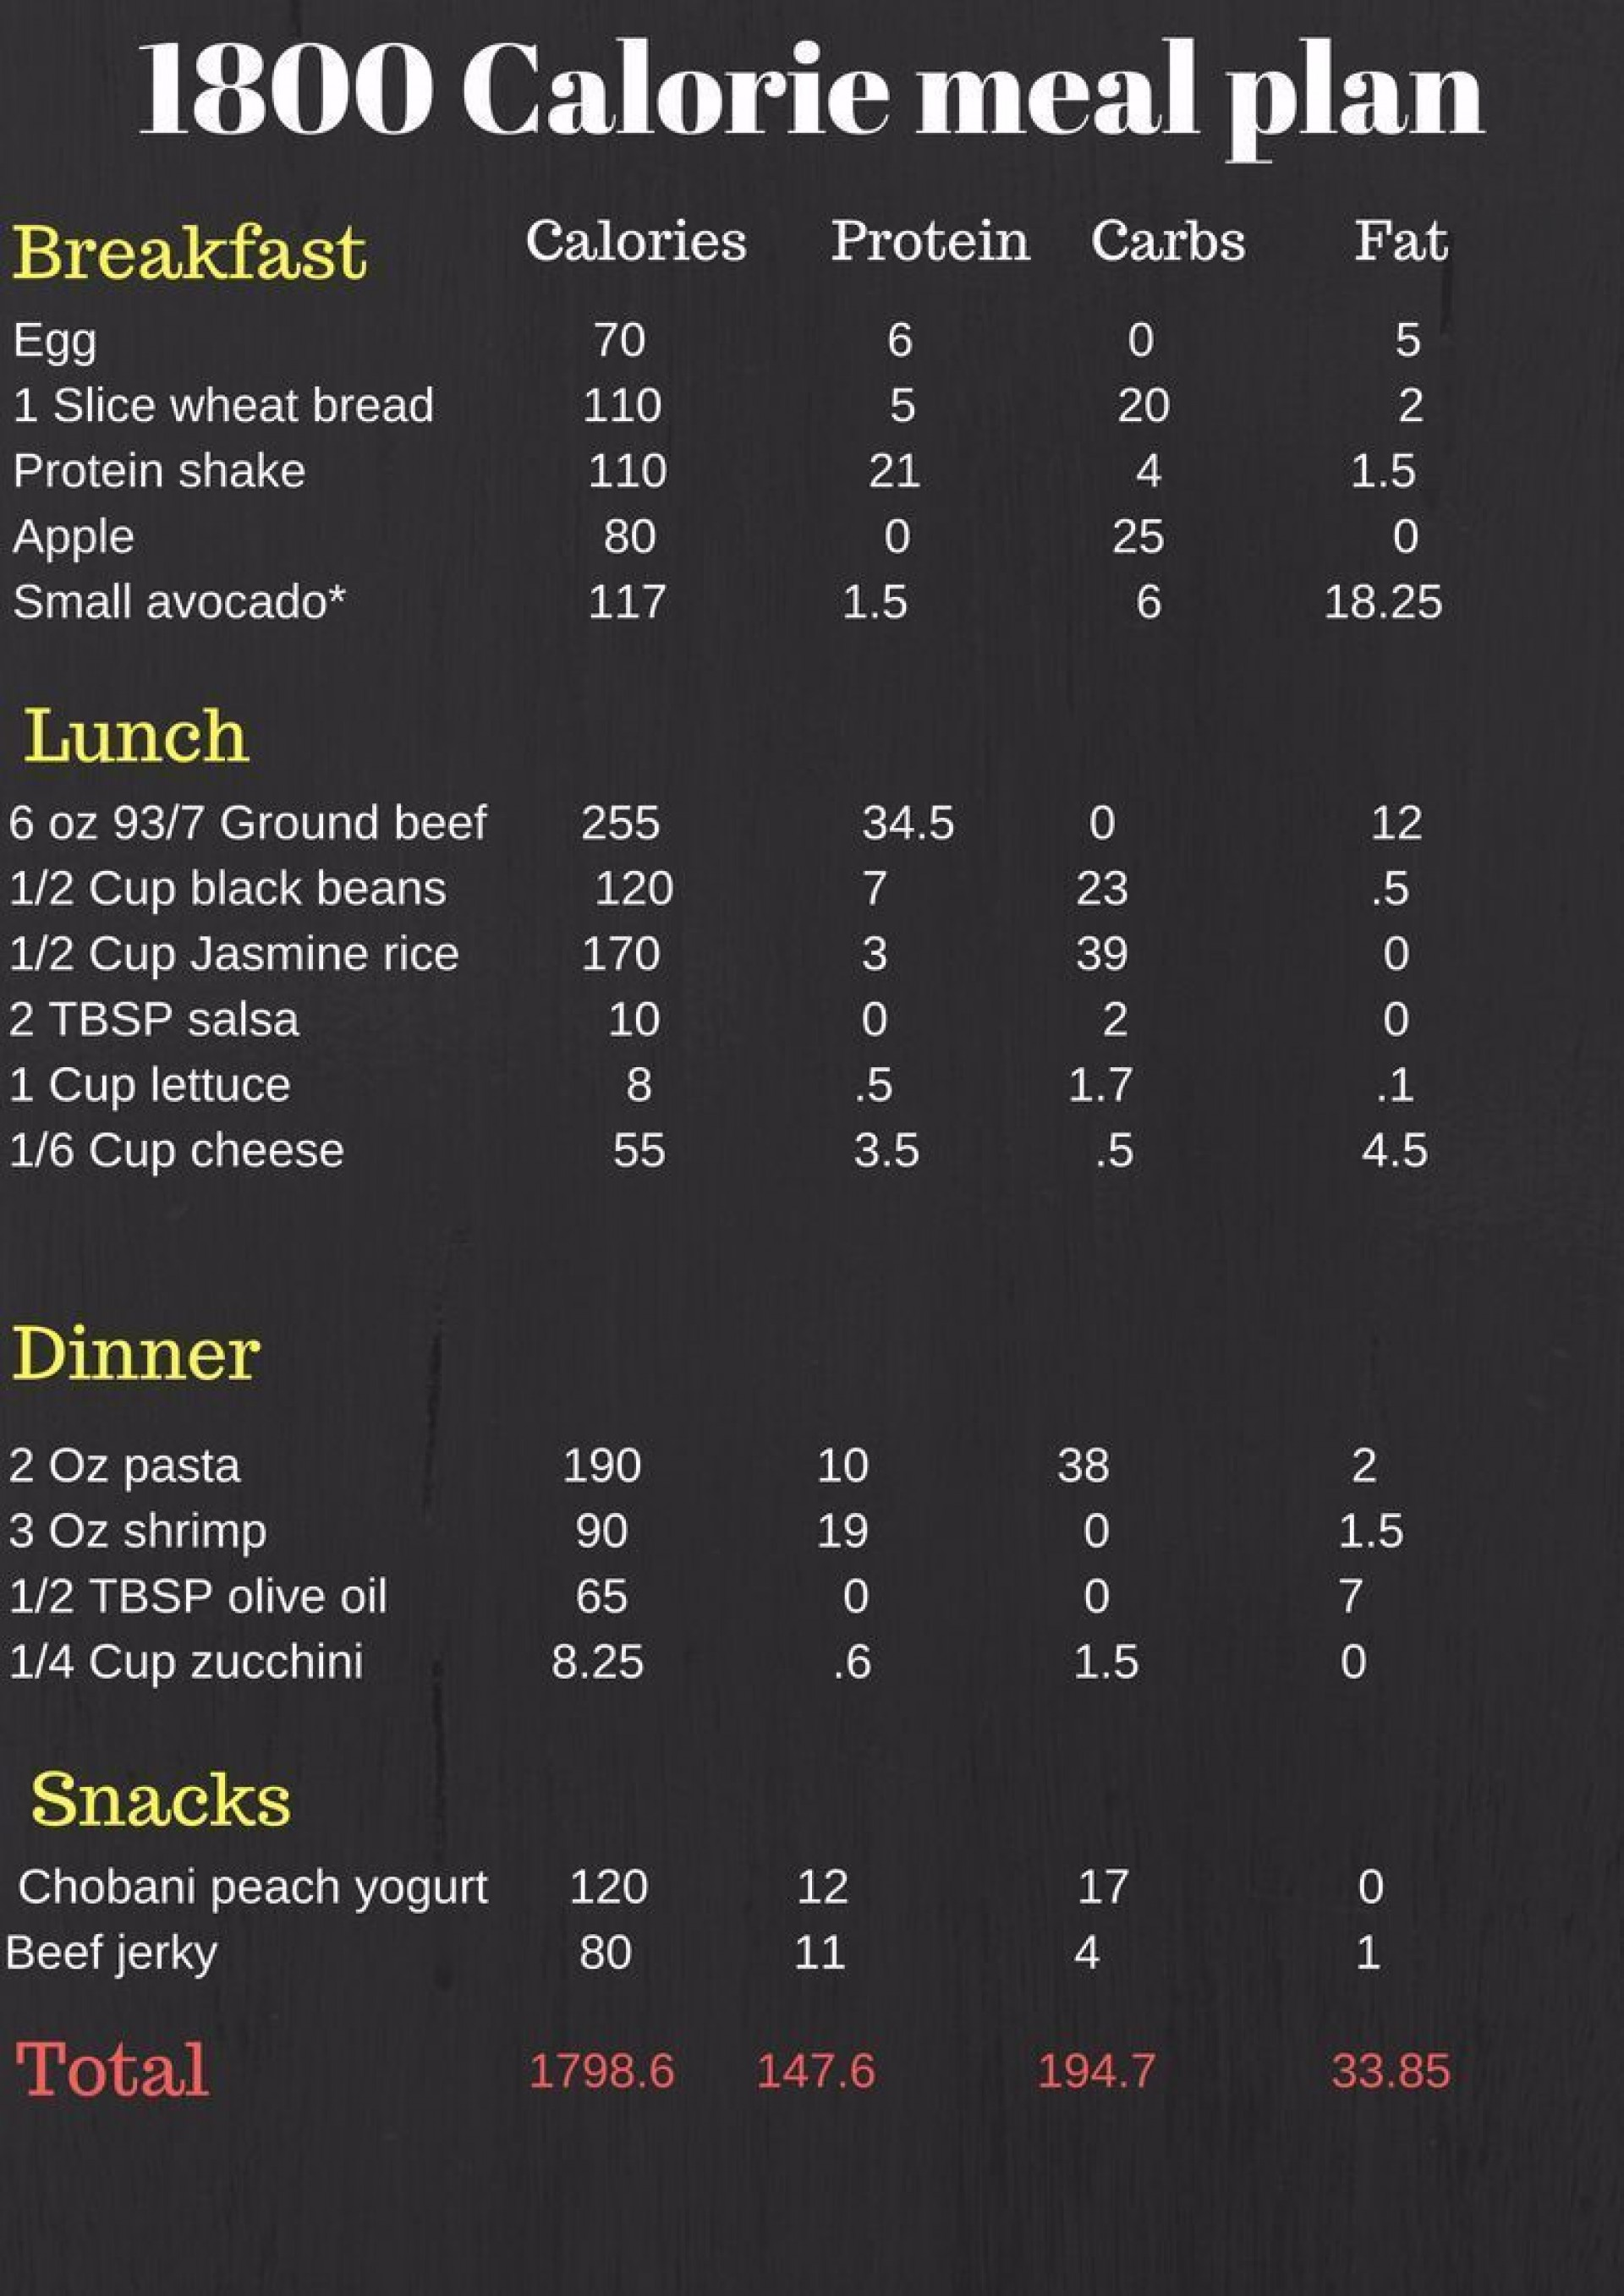 002 Awful Sample 1800 Calorie Meal Plan Pdf High Definition 1920